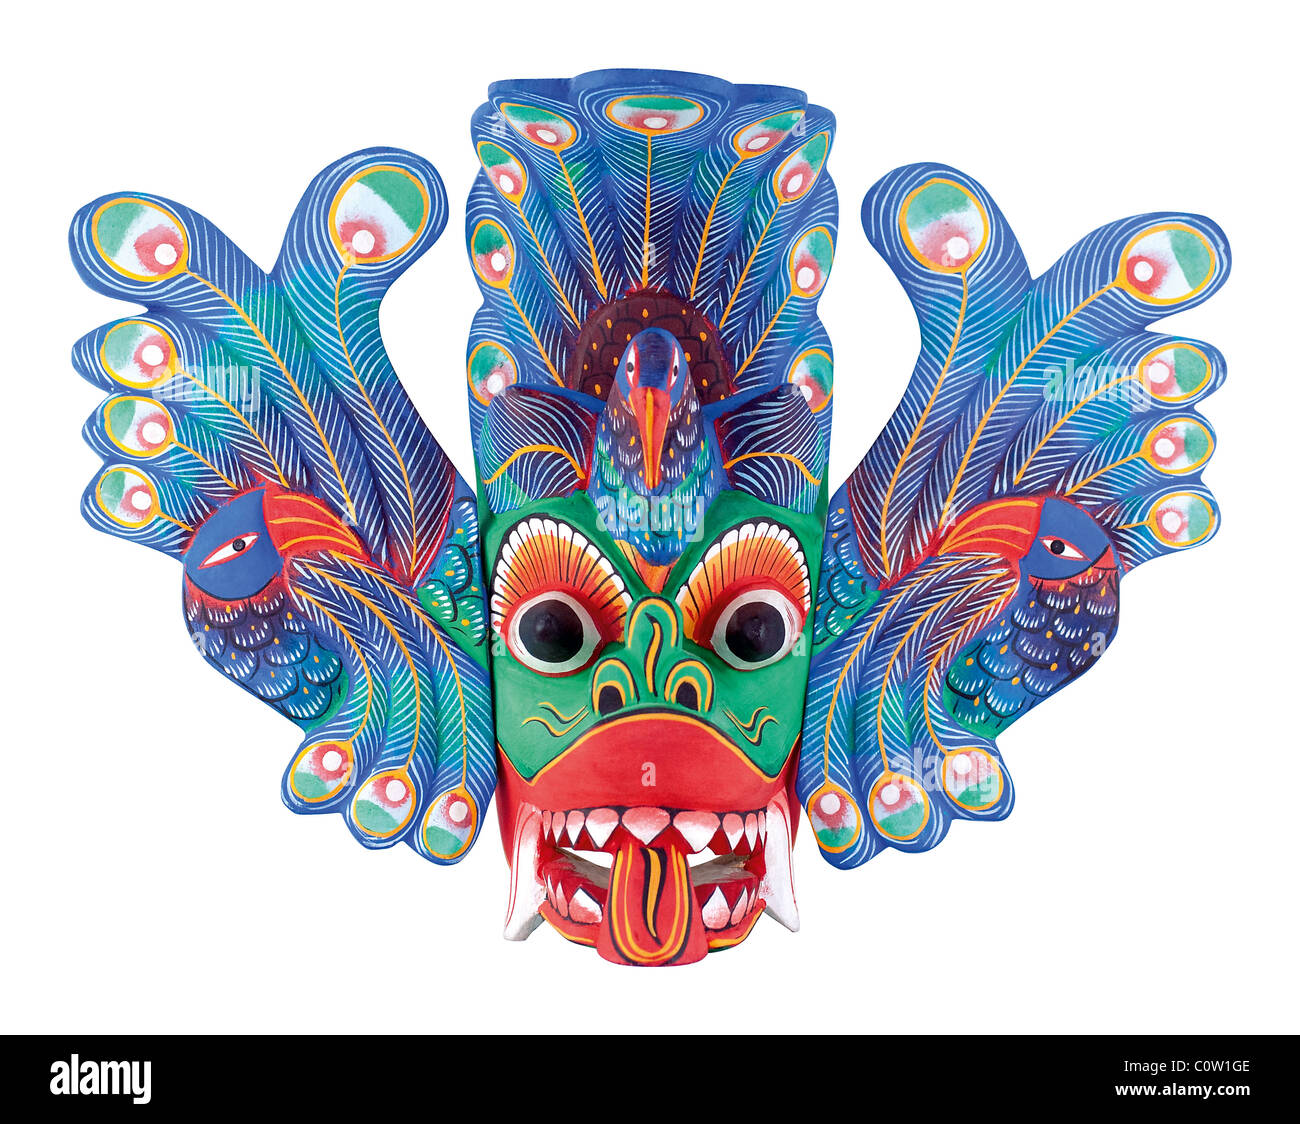 Folk Mask - Stock Image